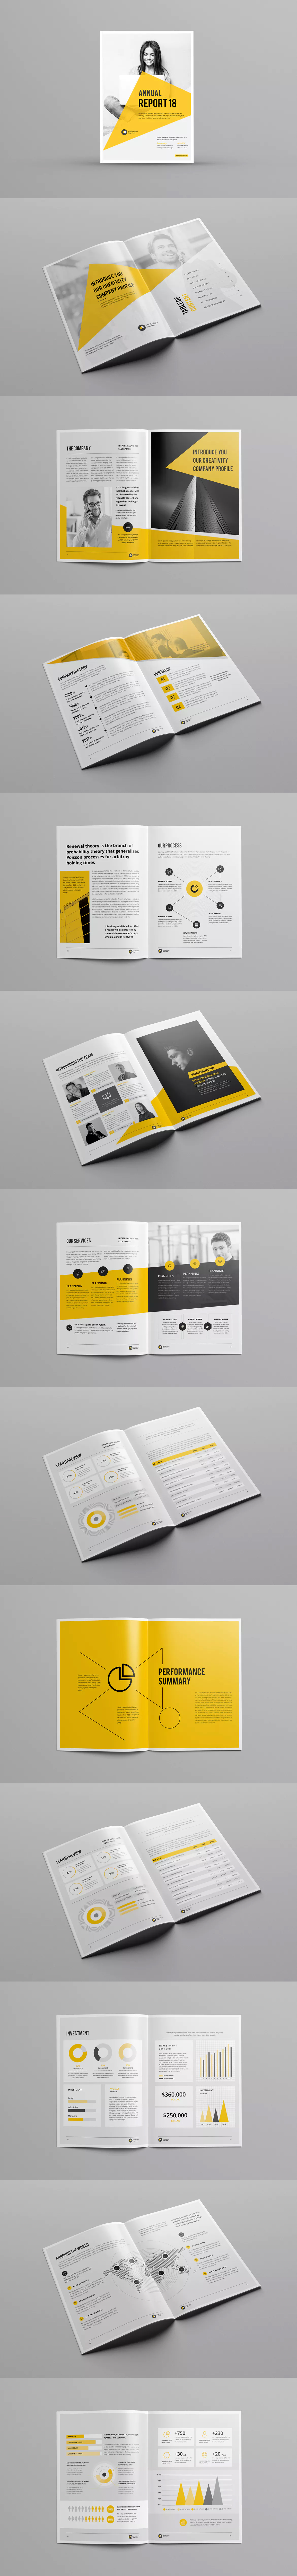 Annual Report Template InDesign INDD A4   Modelos Folletos ...